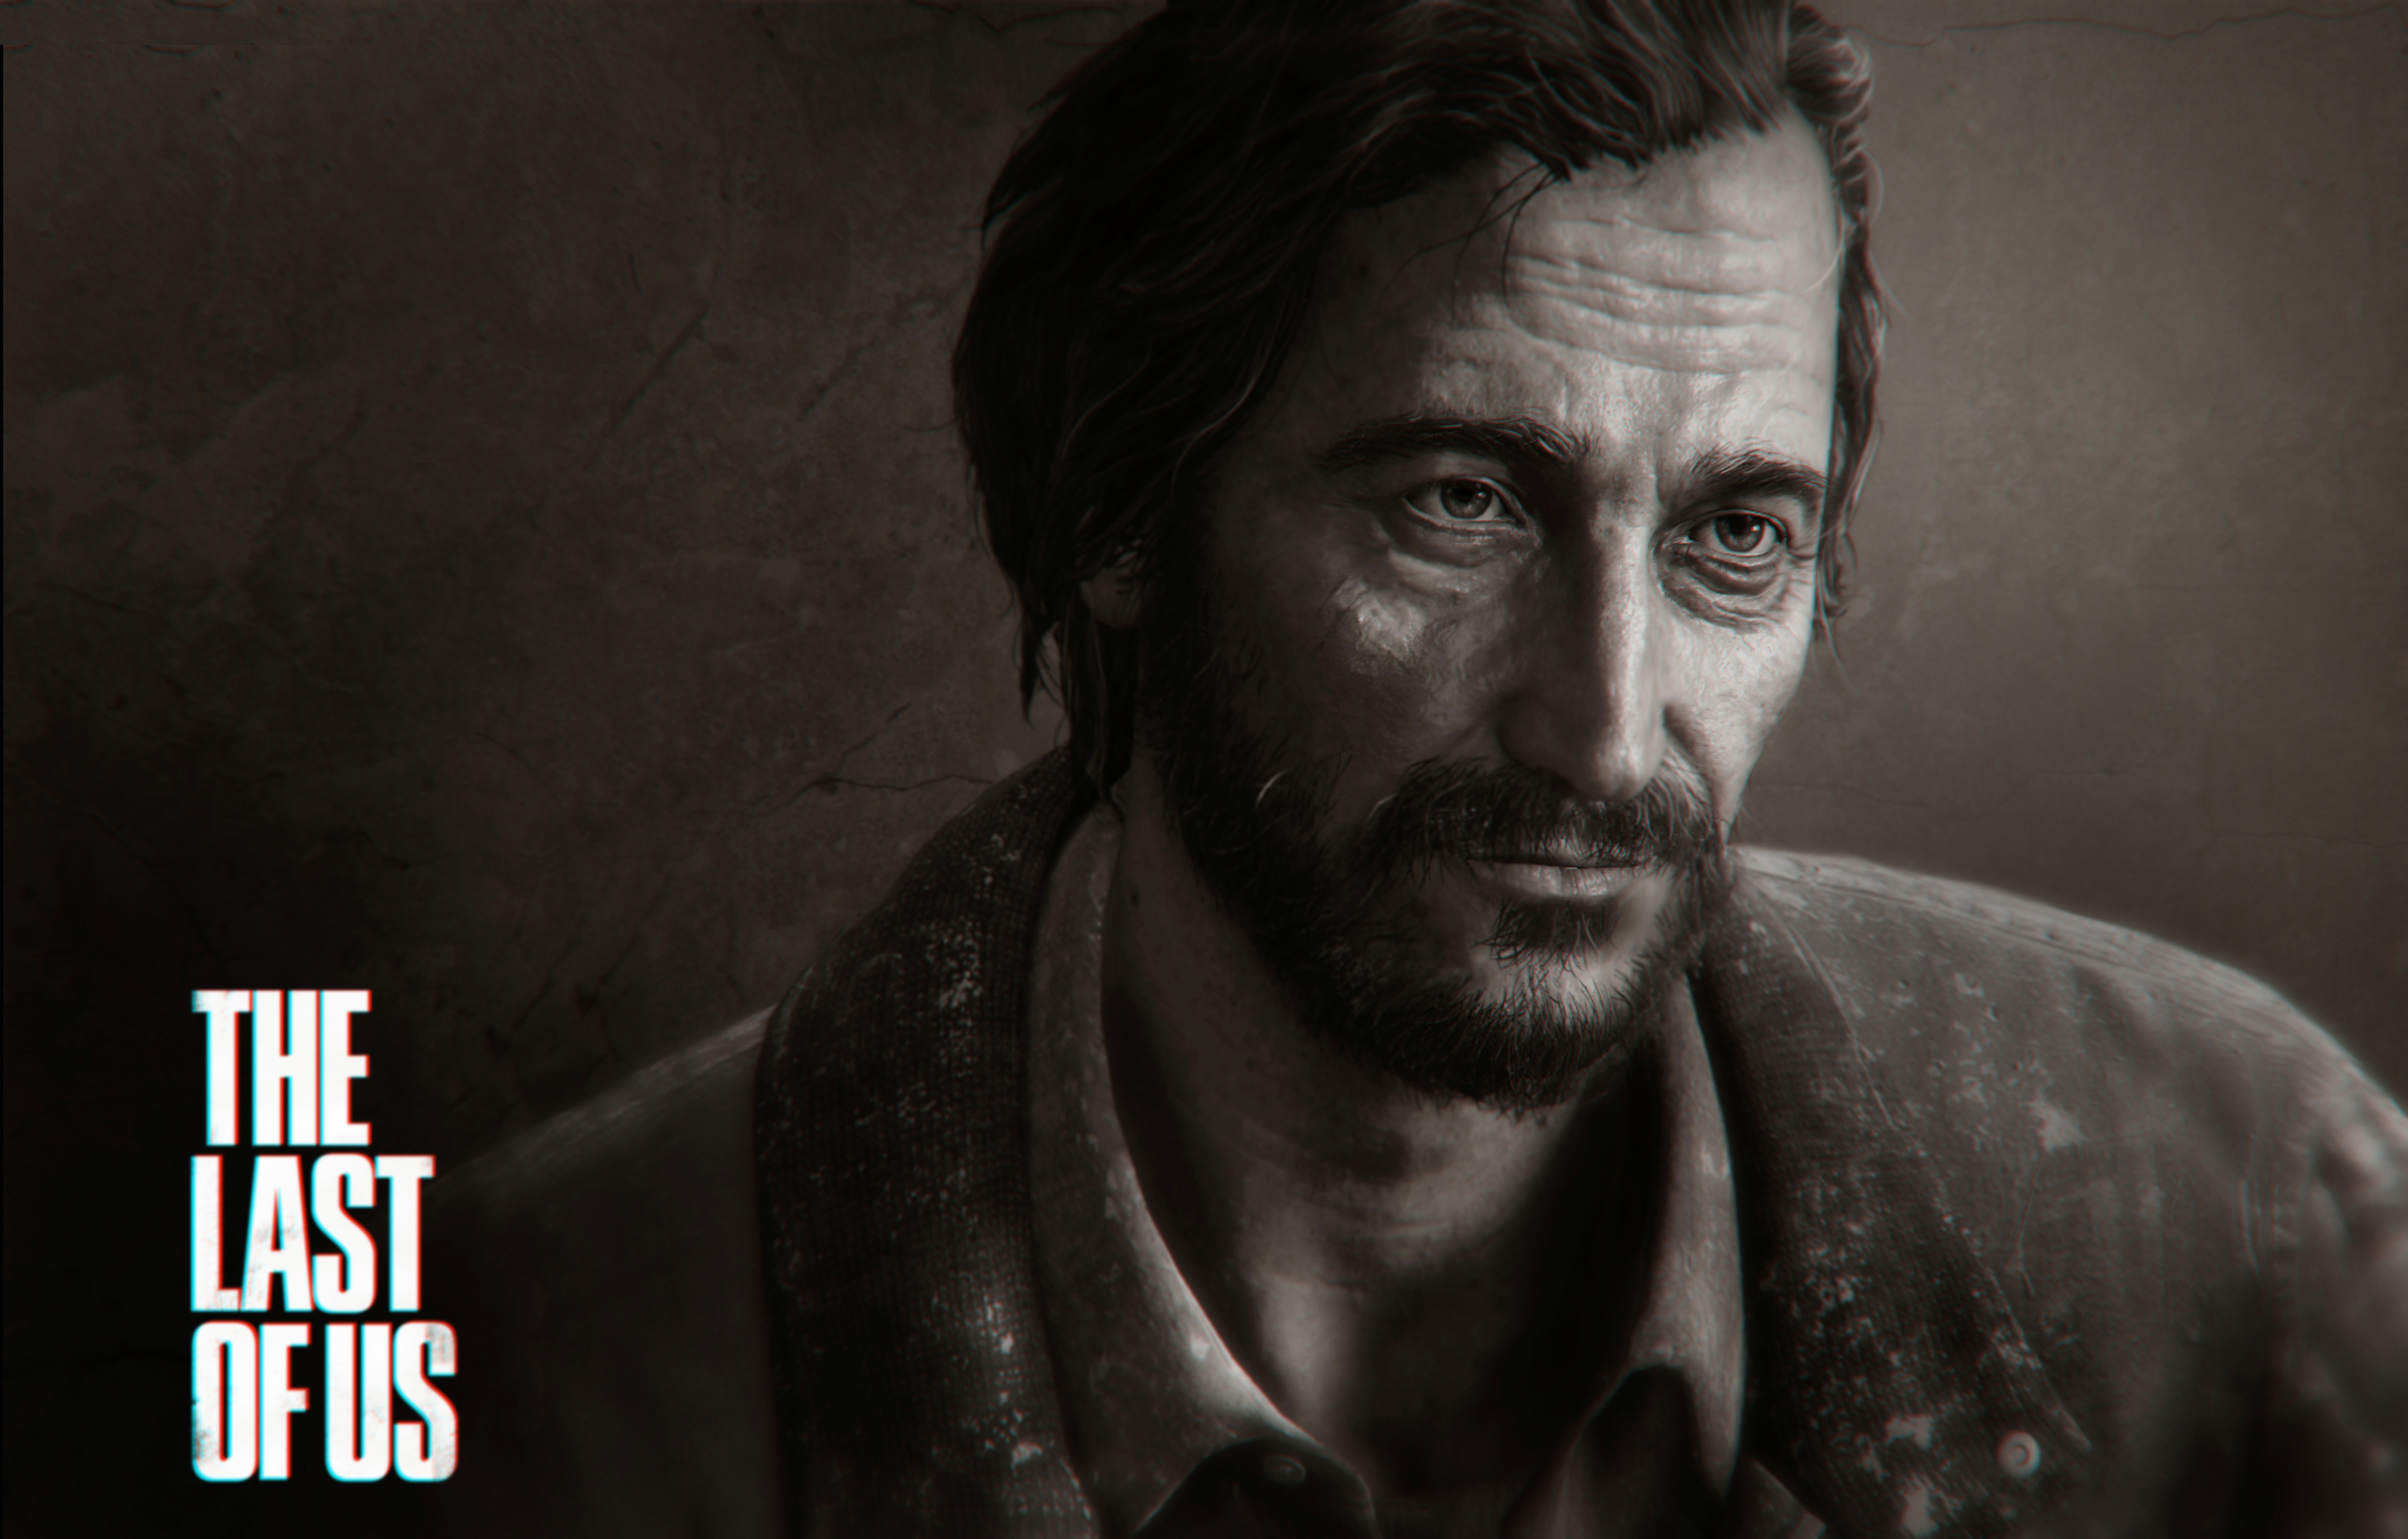 David   is a character   that appears in The Last of Us.   He is the leader of a  group of survivors and acts as the primary antagonist of lakeside resort.